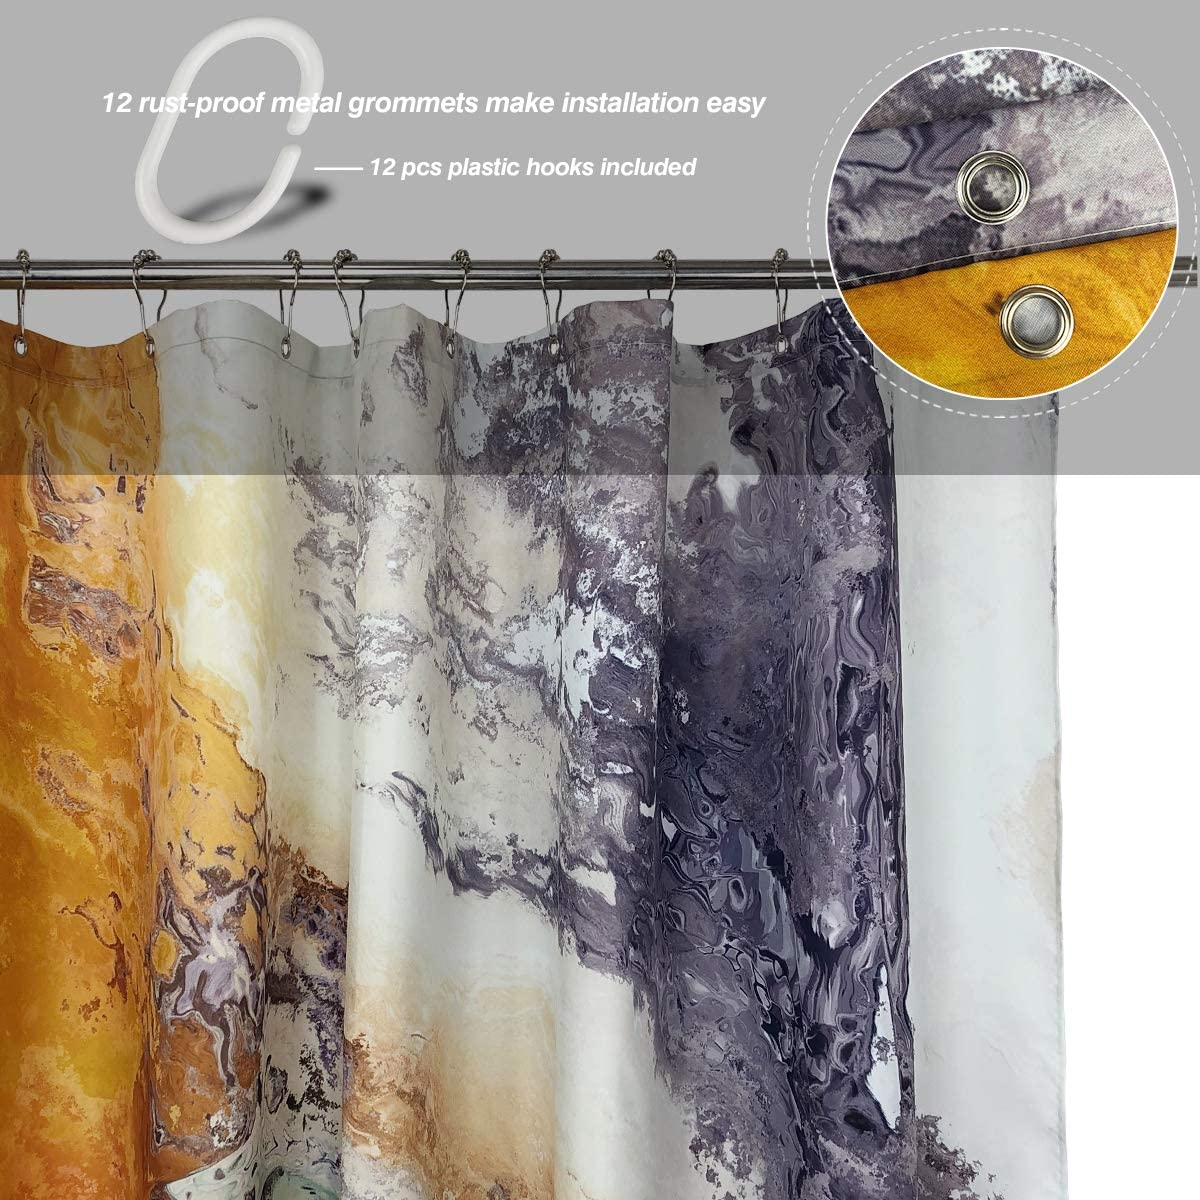 Colorful JOYMIN Shower Curtain Sets with Rugs and Accessoties Toilet Lid Cover and Bath Mat Art Print 4PCS Abstract Color Marble Ink Texture Bathroom Shower Curtain with 12 Hooks Non-Slip Rugs